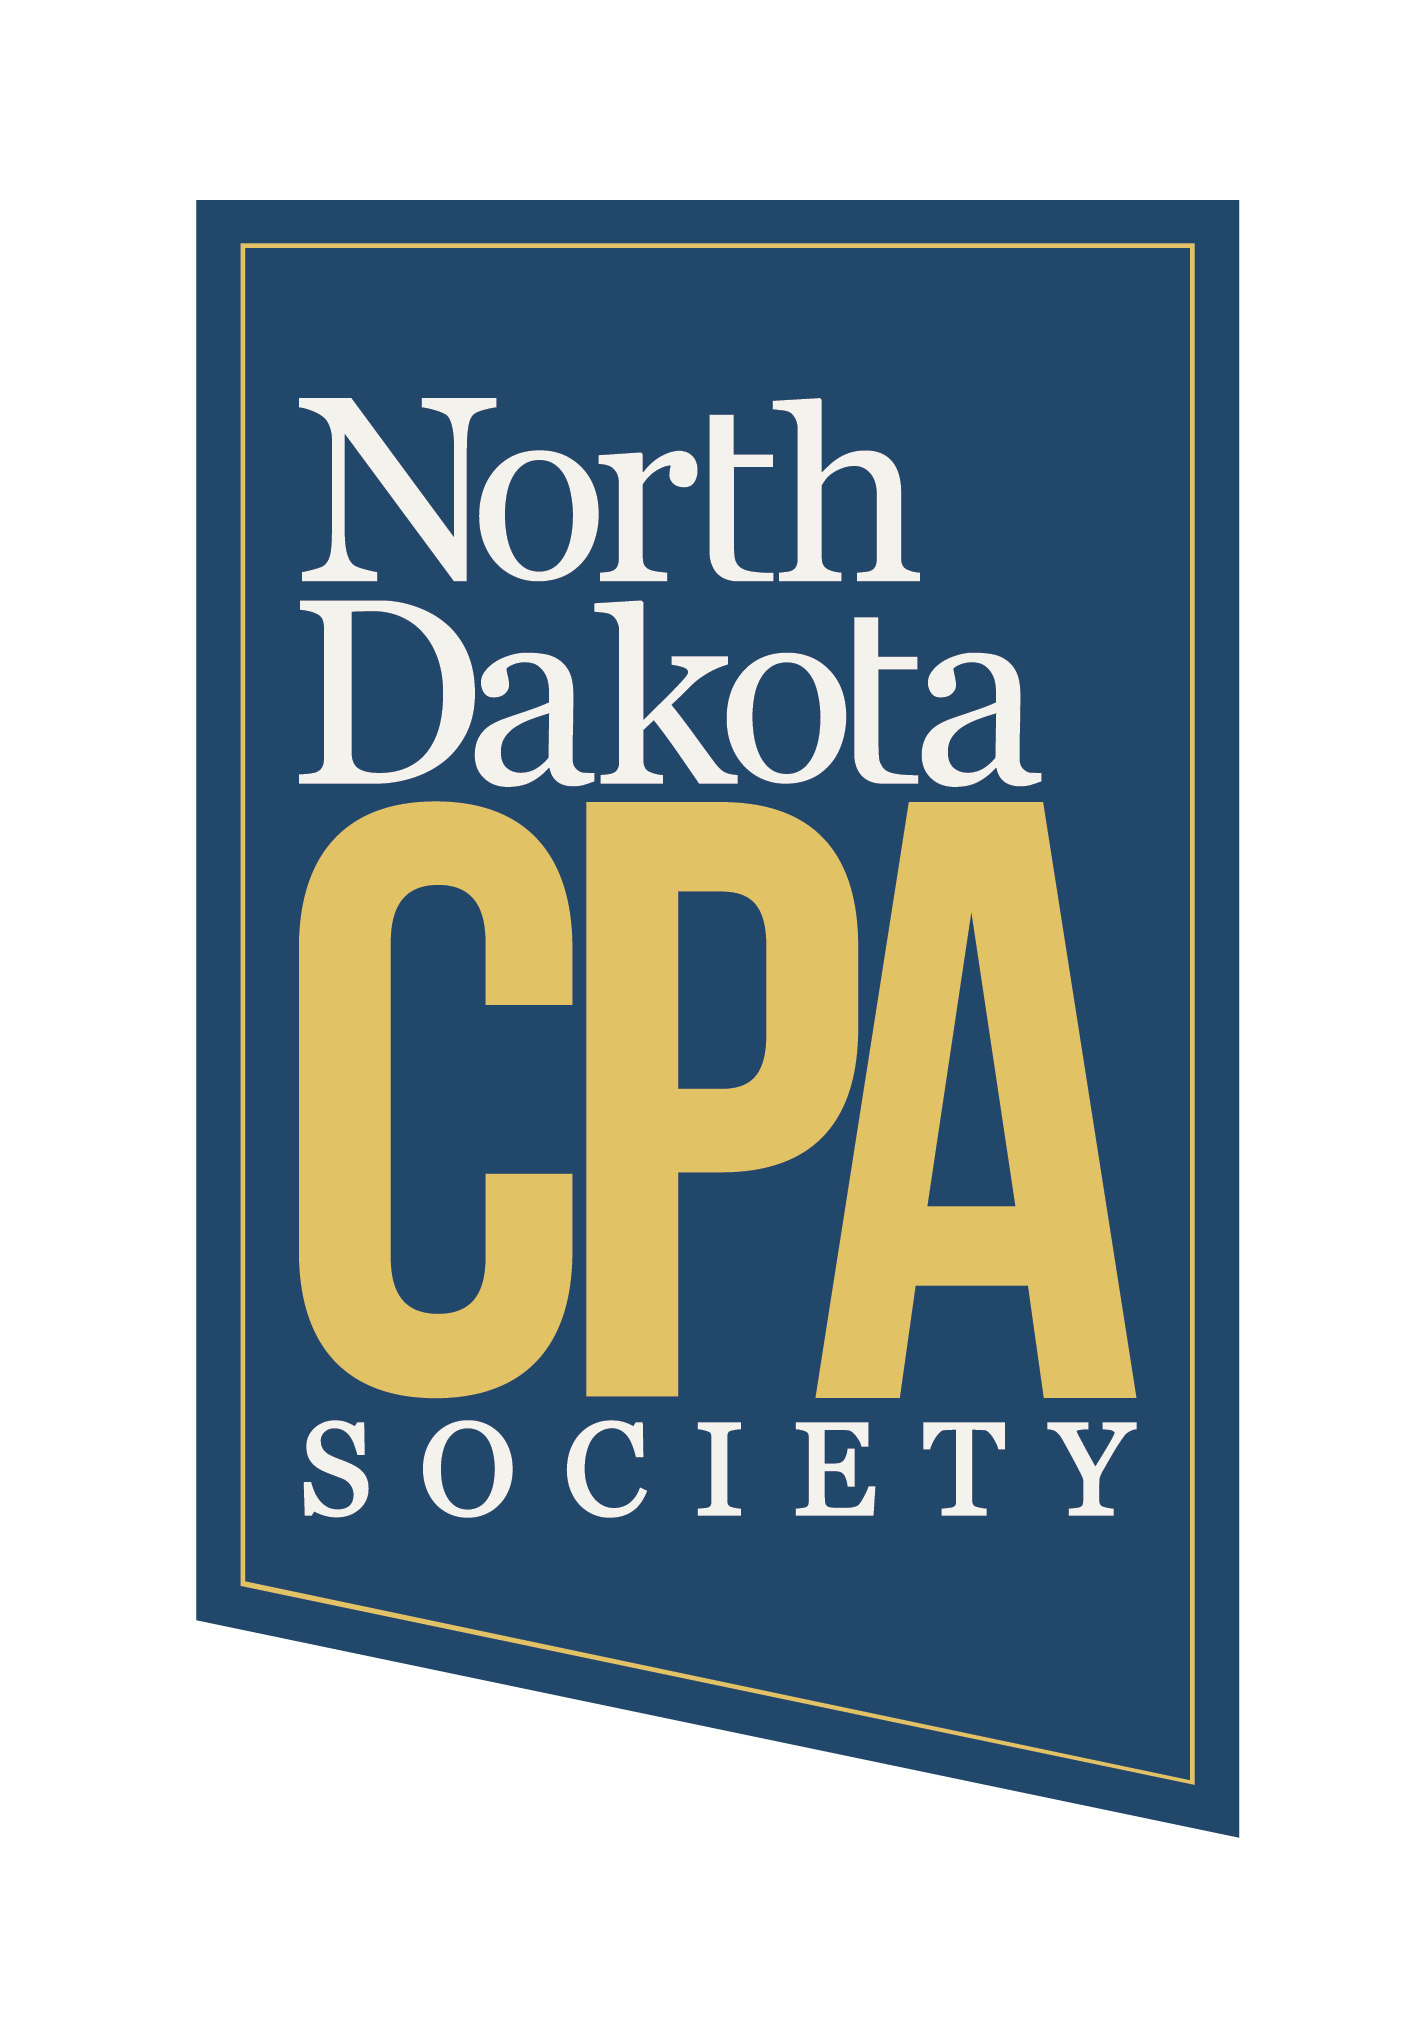 Nd cpa society updates for pps and form 2848 falaconquin